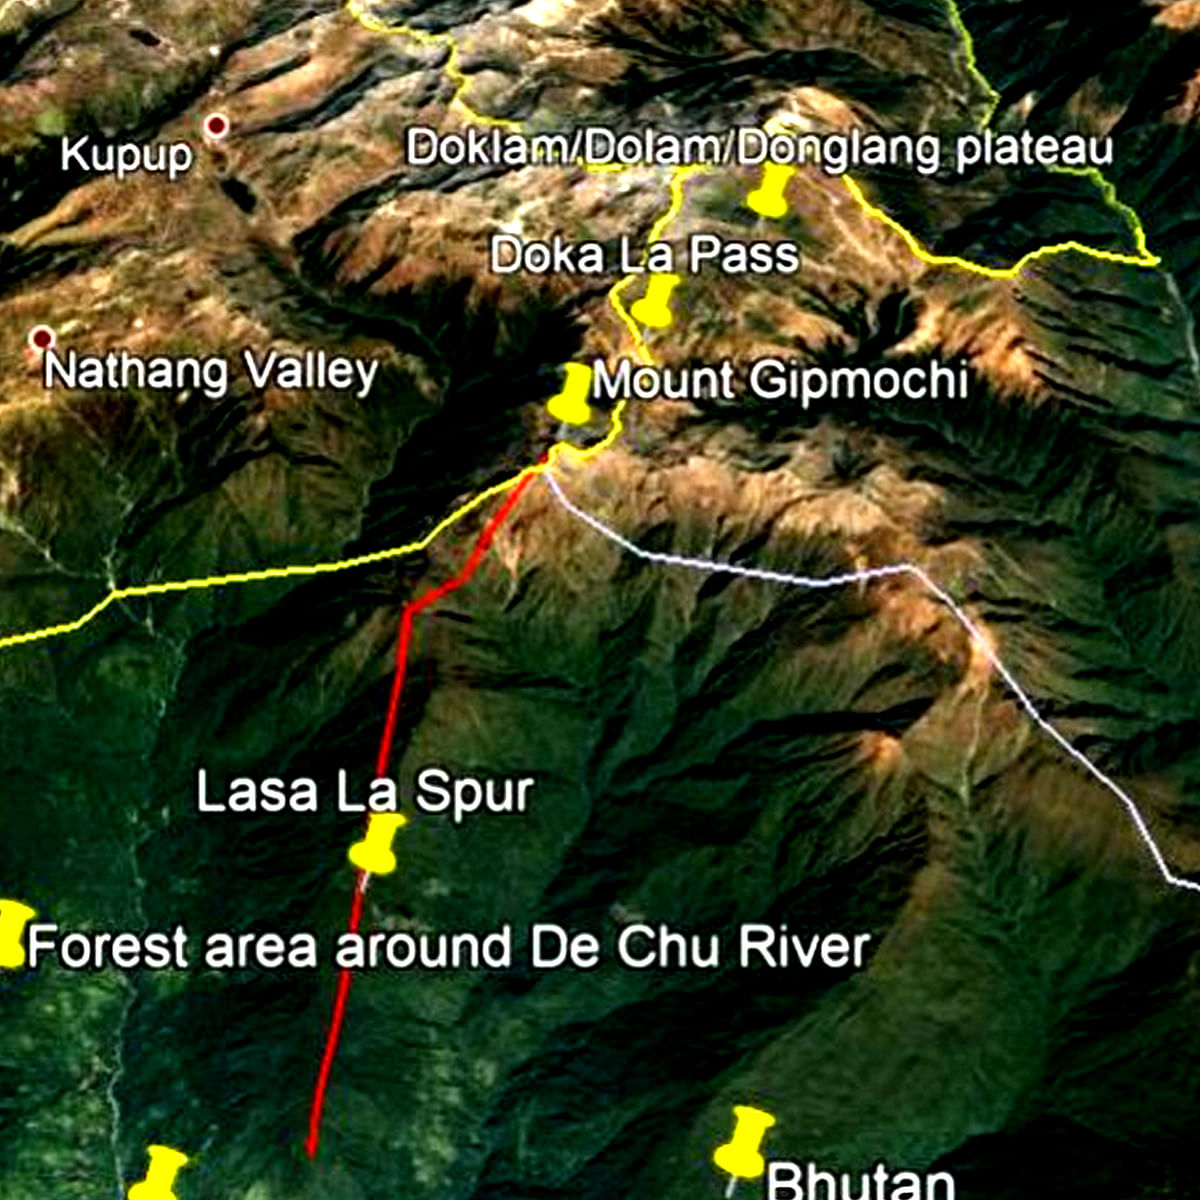 Map showing the location of Mount Gipmochi.